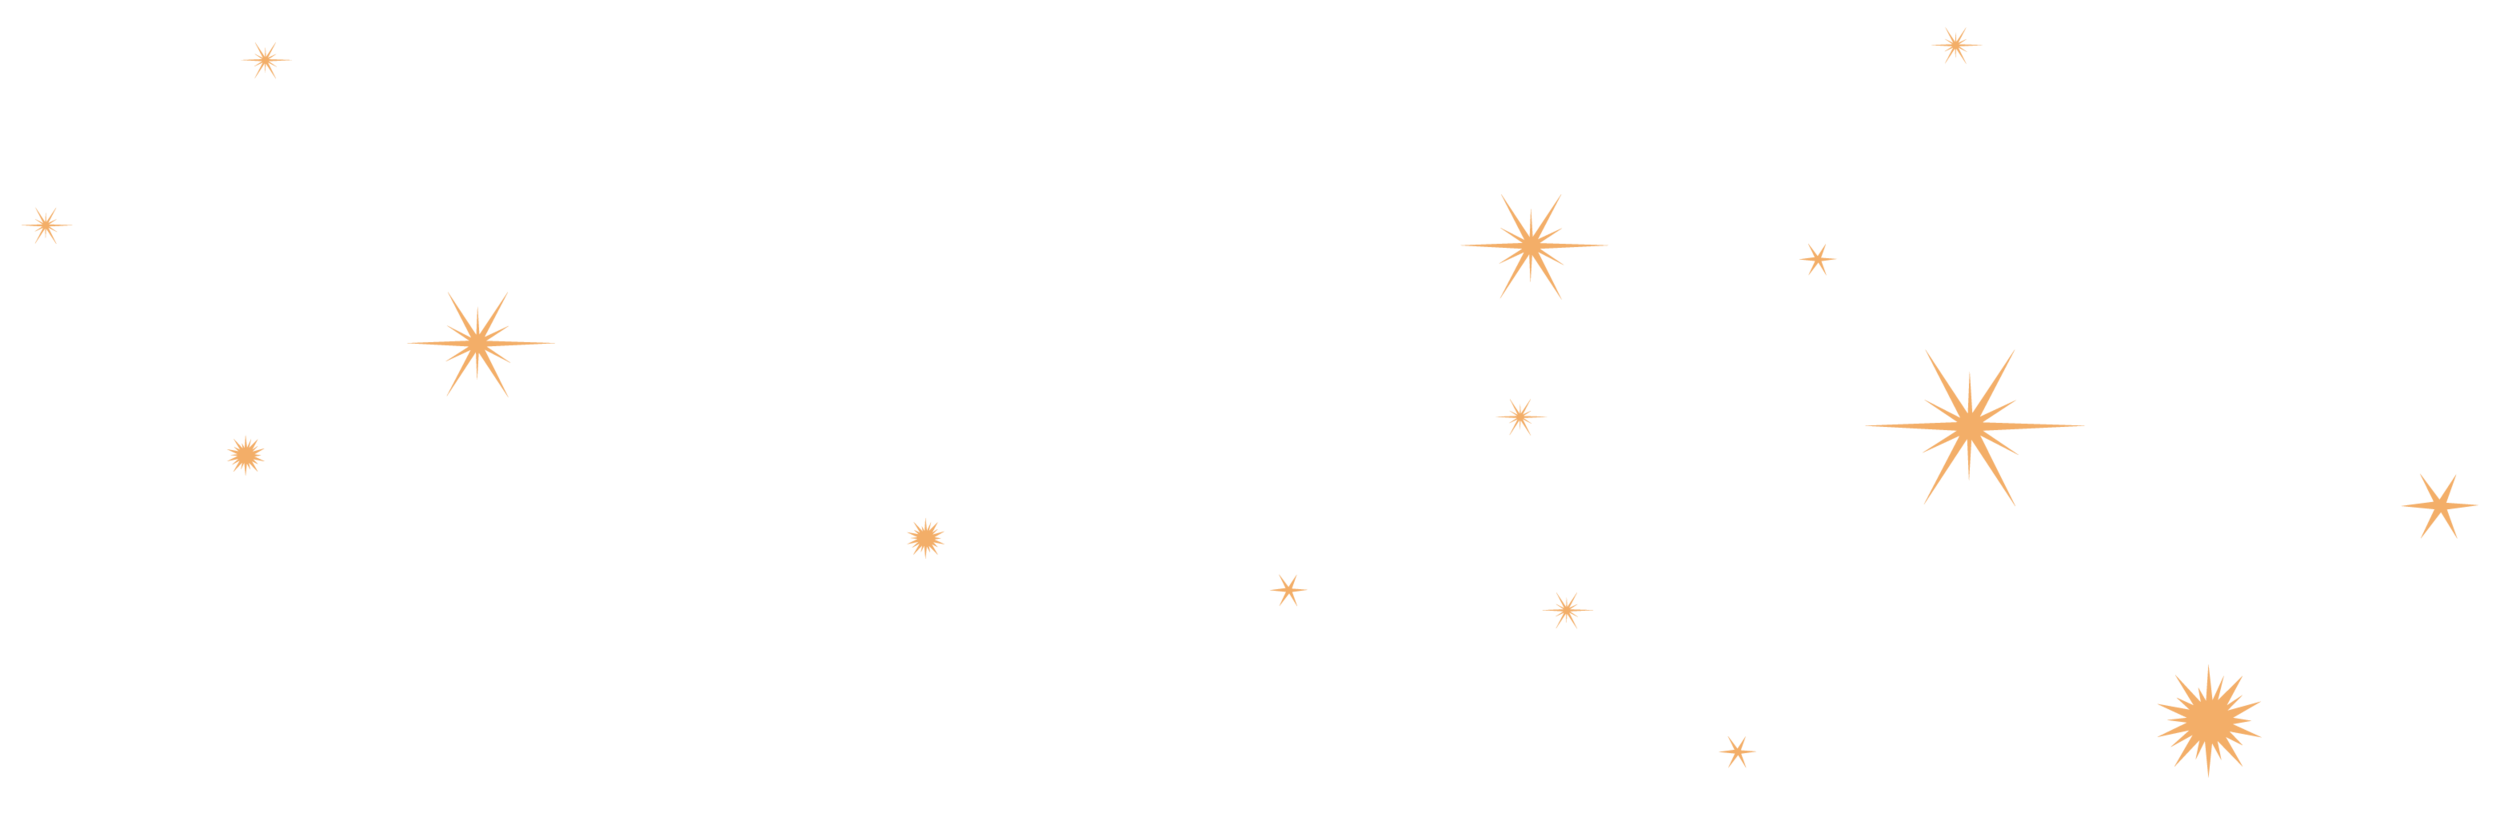 cluster stars-04.png